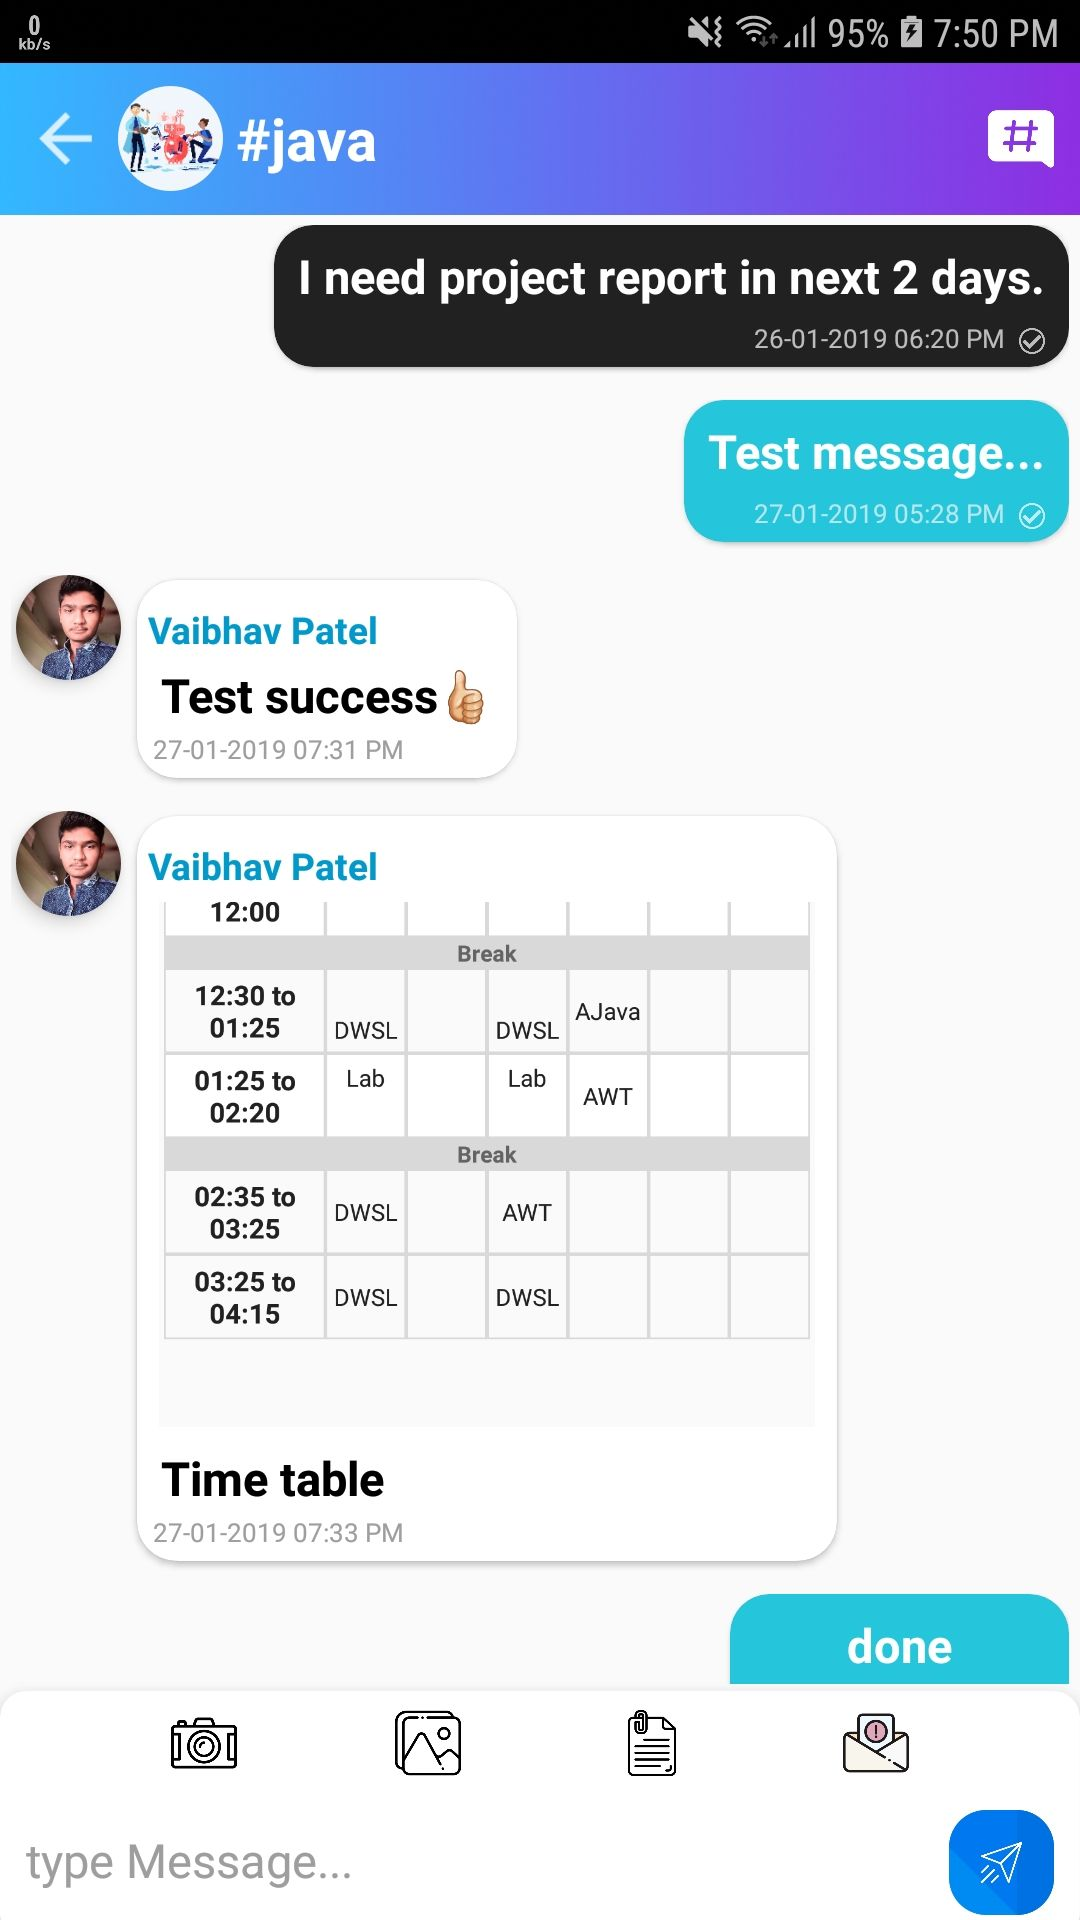 Firebase chat & team collaboration app Fteam